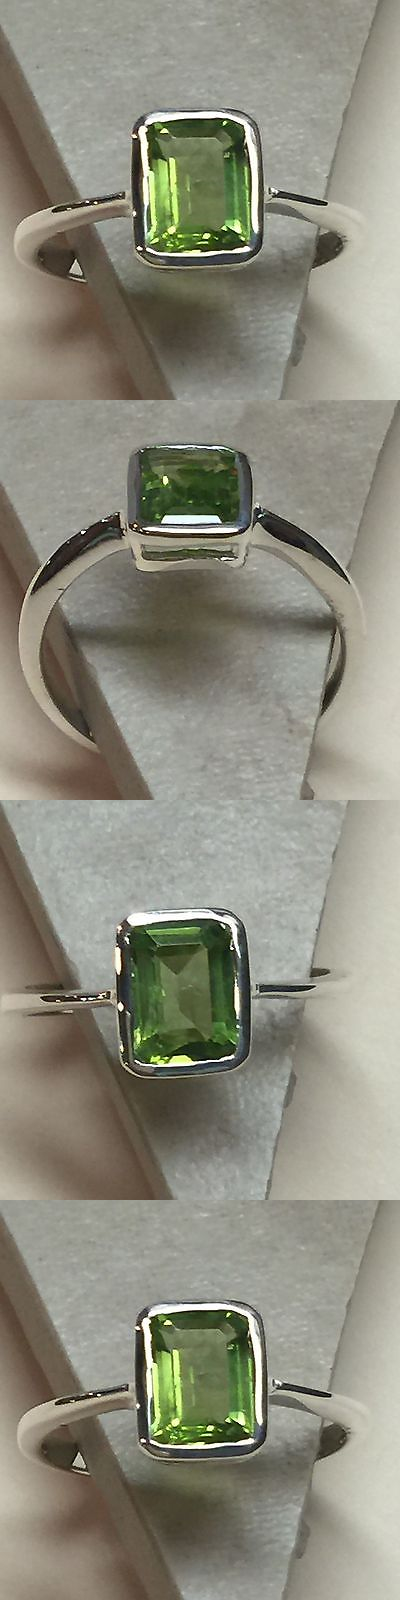 Gemstone 164343: Natural Emerald Cut 1Ct Peridot 925 Solid Sterling Silver Ring Sz 8 -> BUY IT NOW ONLY: $47.49 on eBay!